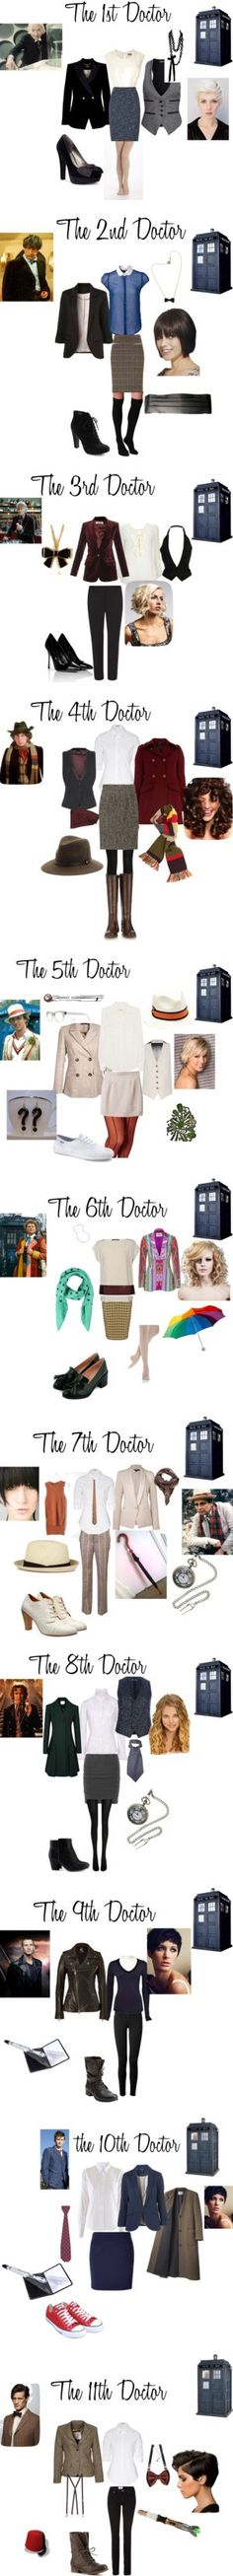 All the Doctors on Polyvore. - kmk